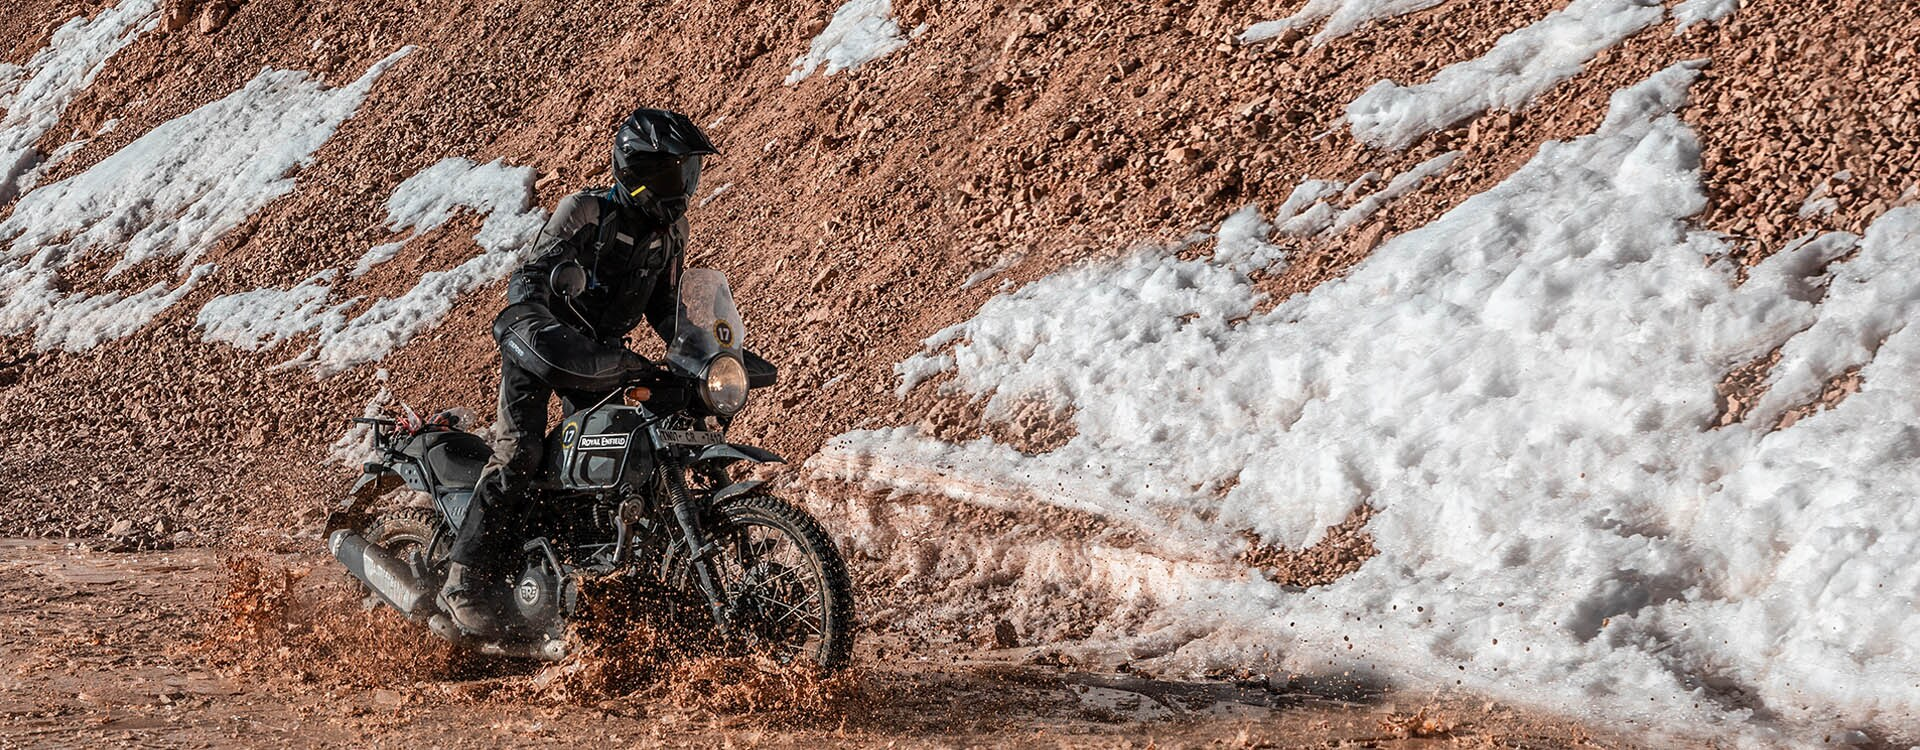 Himalayan-Adventure-ready handling